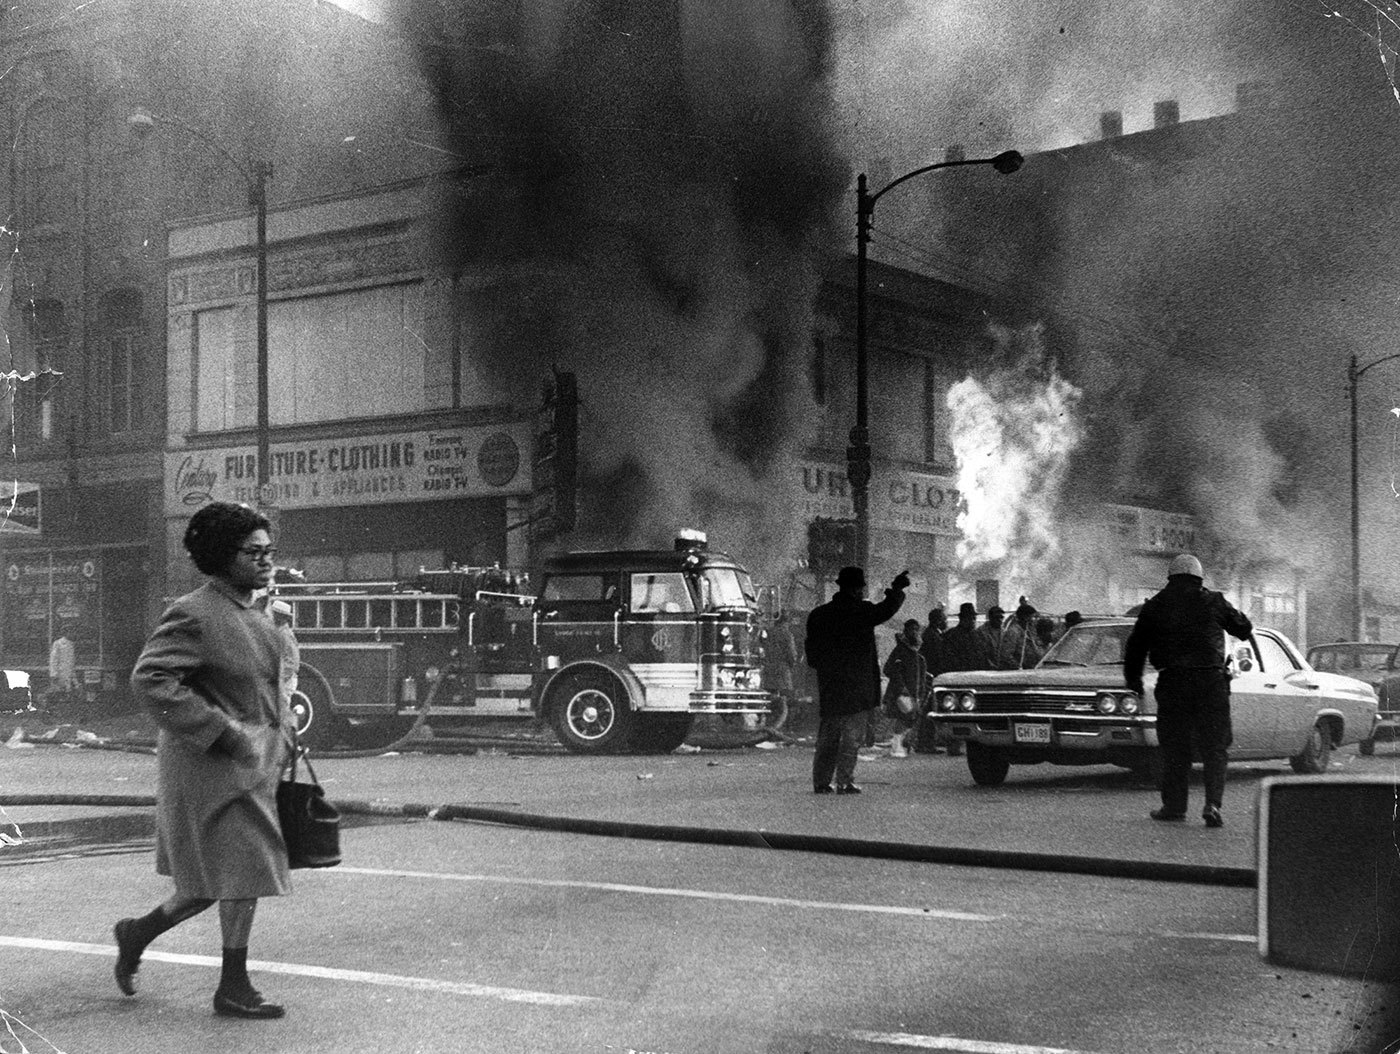 Mlk S Death 50 Years Ago Sparked Riots Across The U S